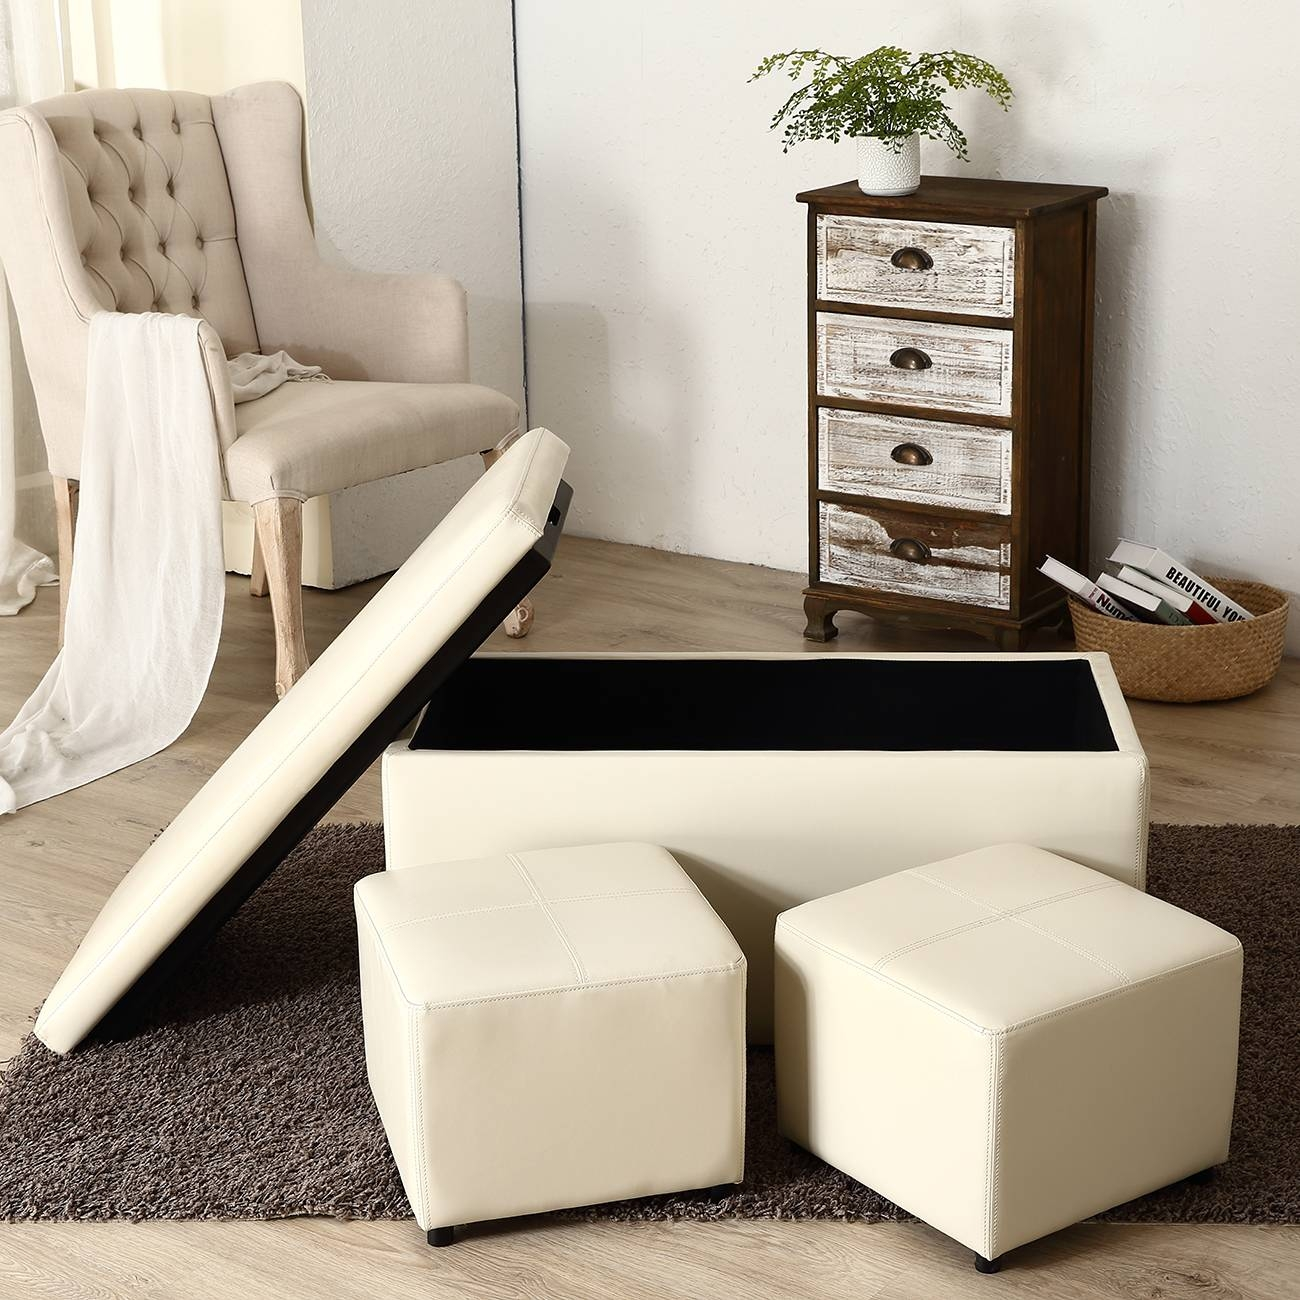 3Pc Ottoman Bench Storage Lid Tray Footrest Coffee Table Black regarding Coffee Table Footrests (Image 6 of 30)